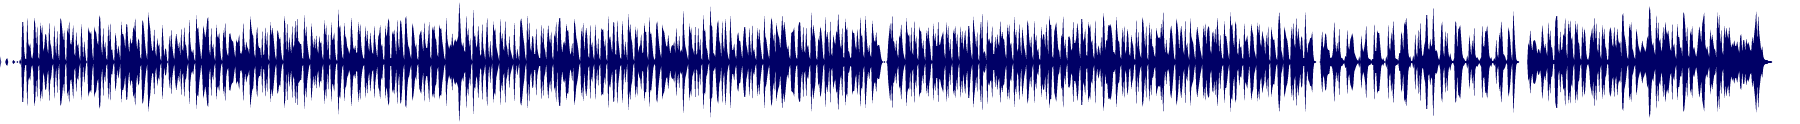 waveform of track #68303